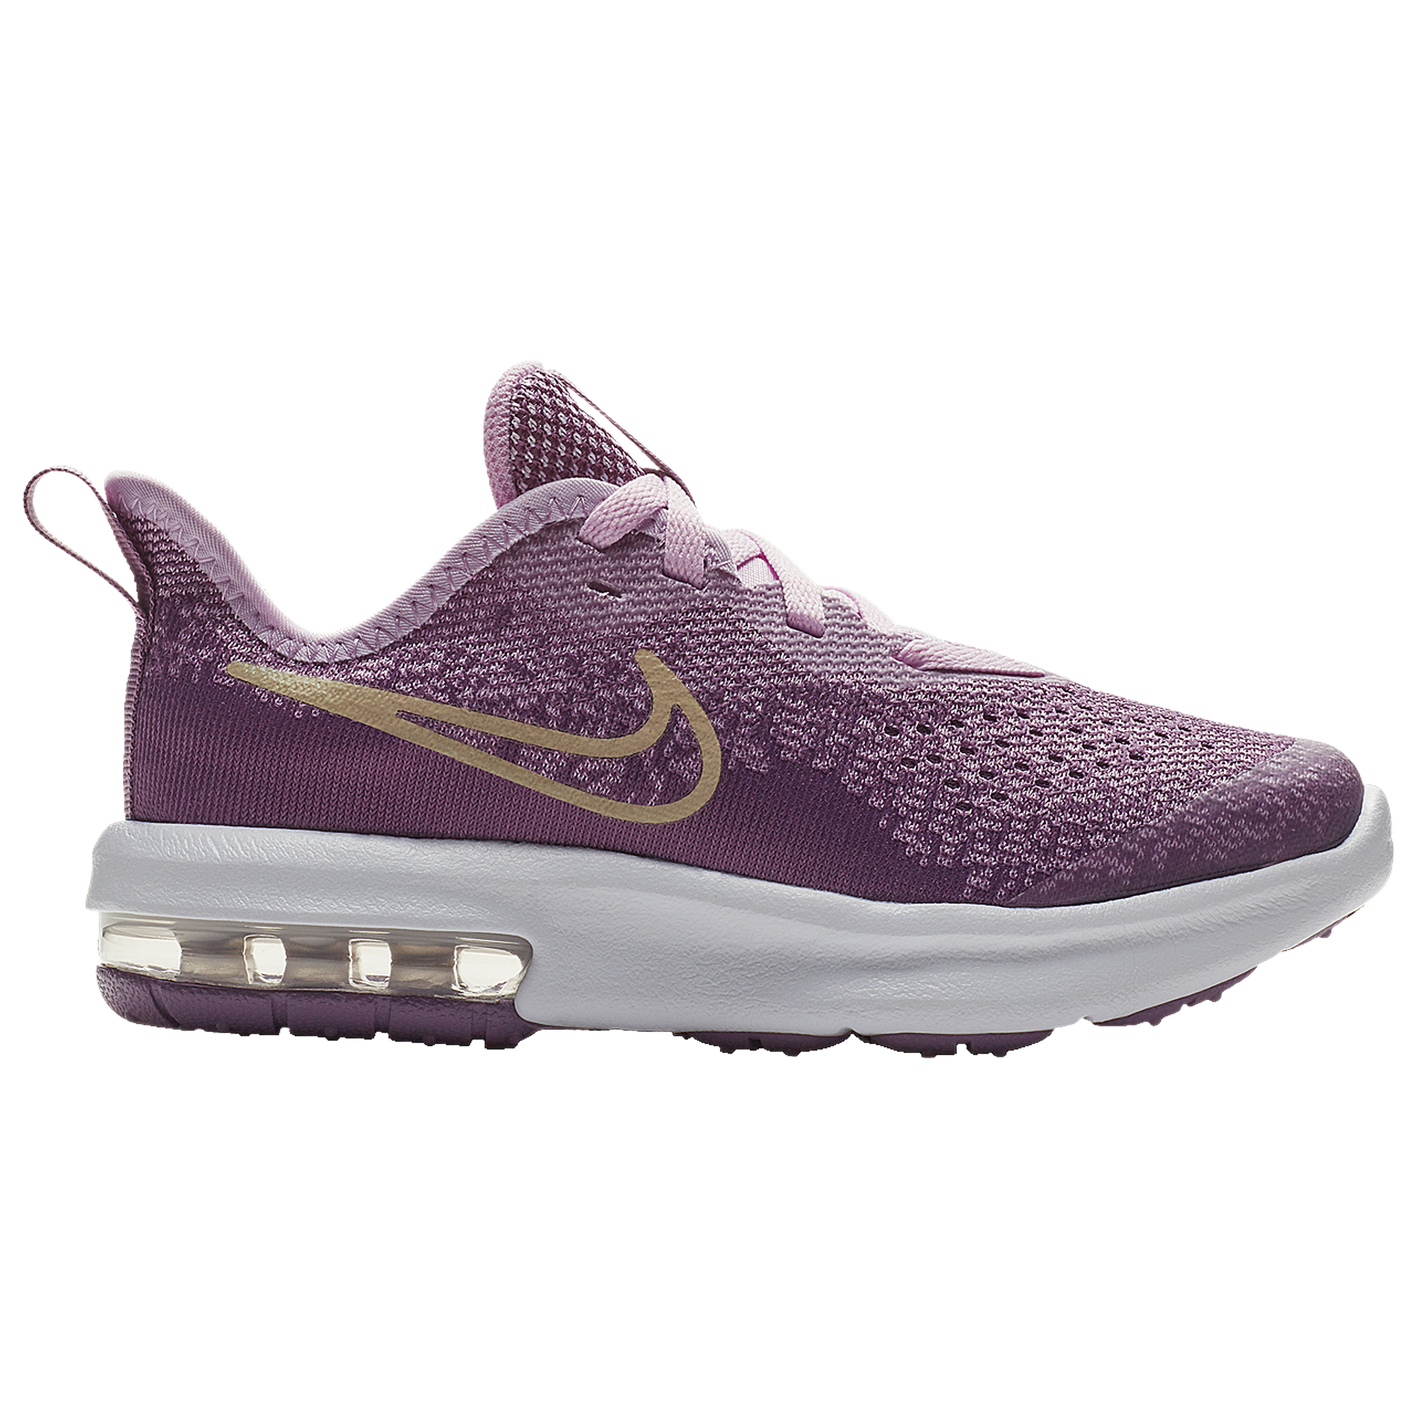 ecd1e49fb15d Nike Air Max Sequent 4 - Girls  Preschool - Casual - Shoes - Violet ...